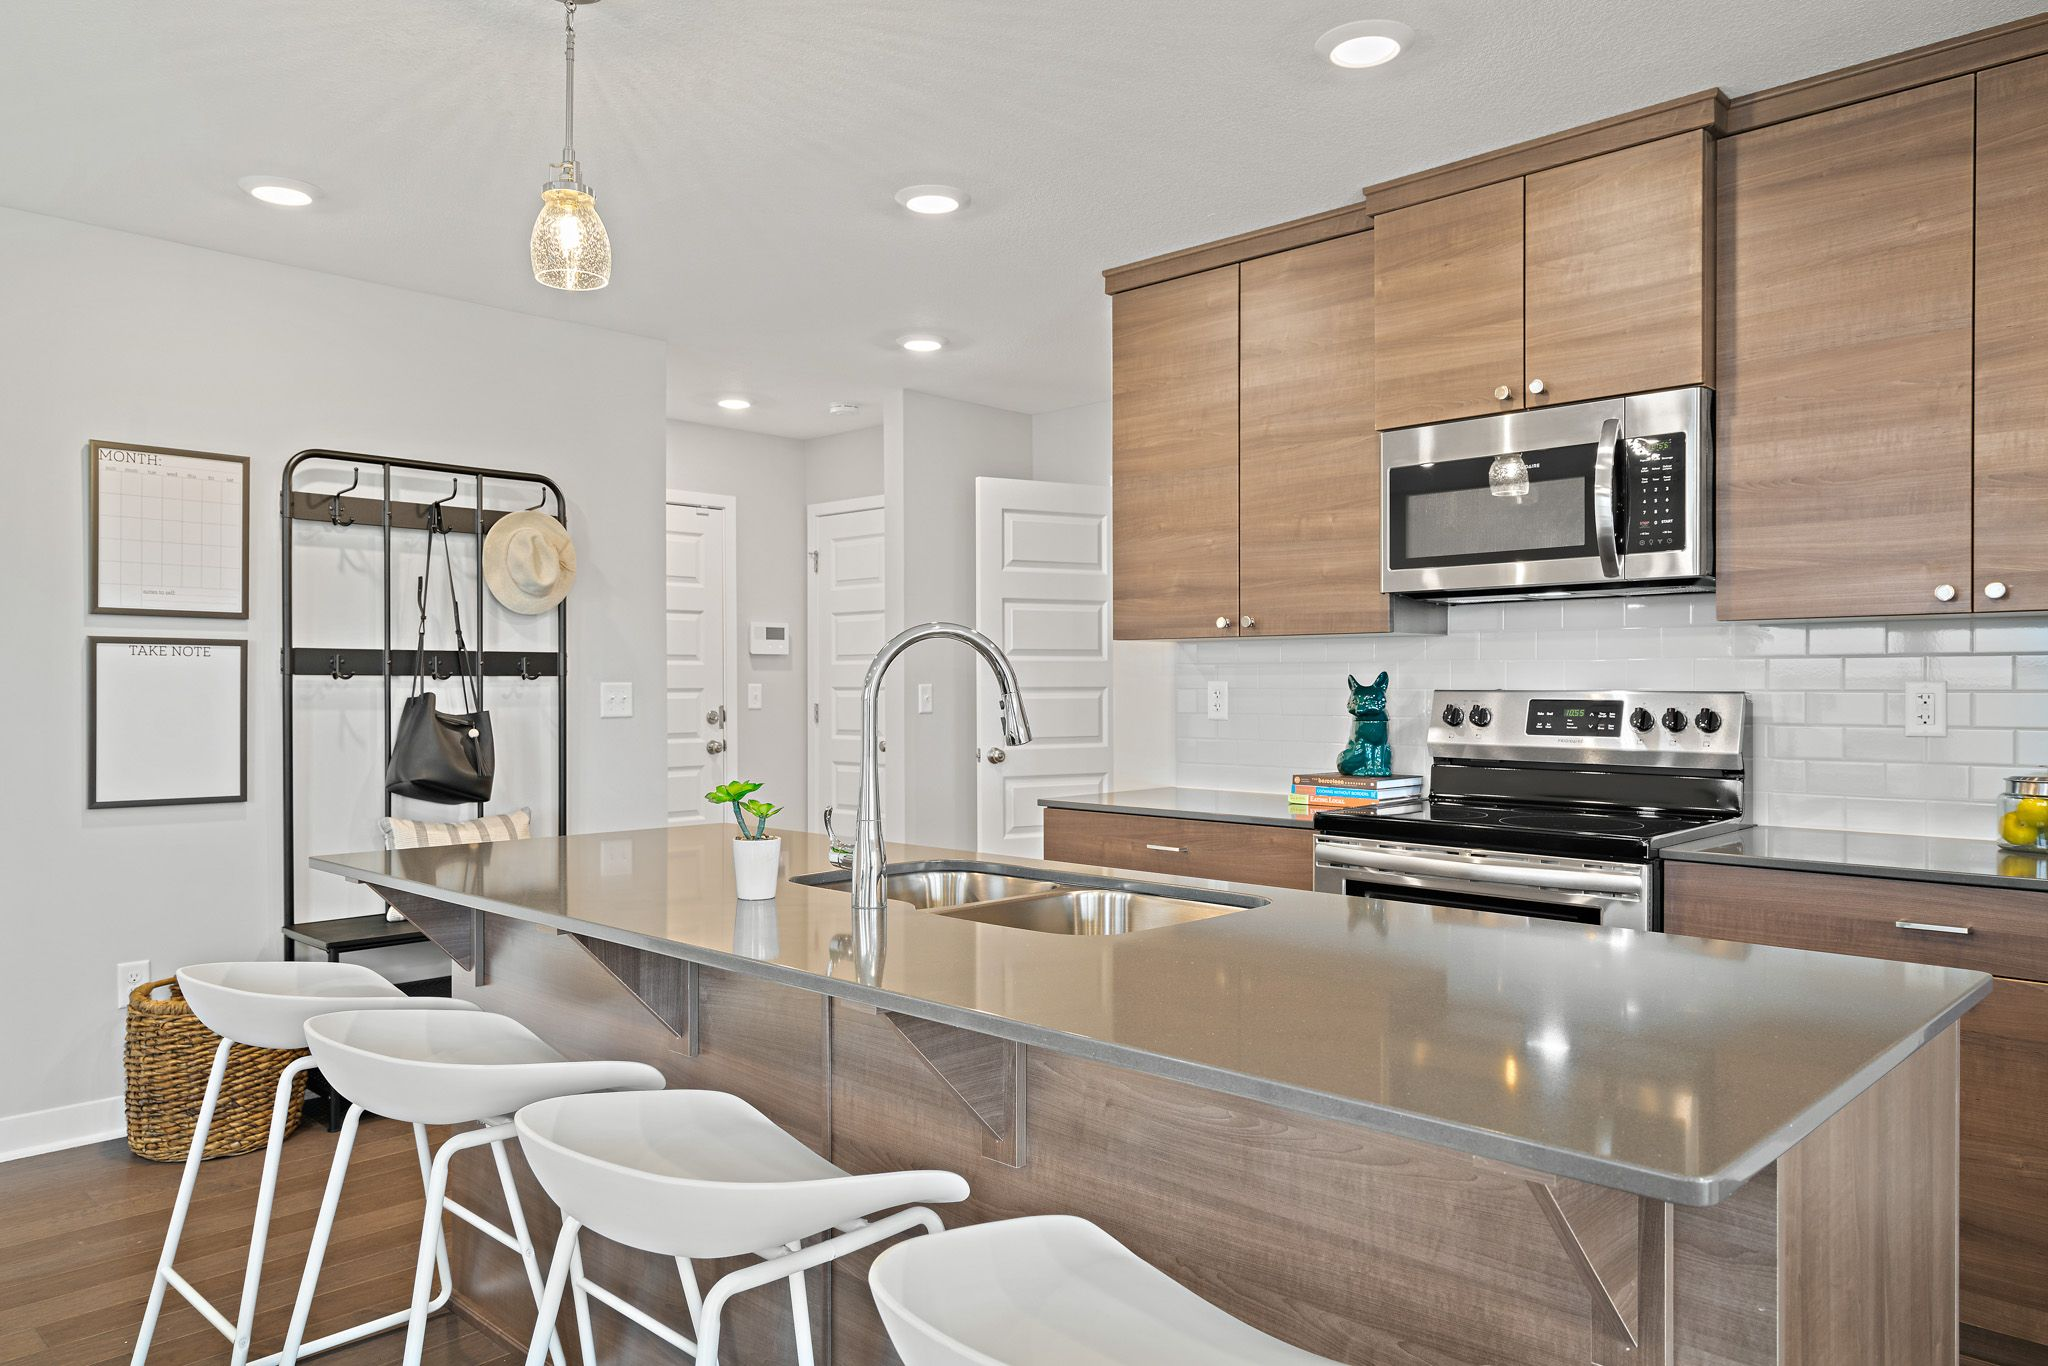 Kitchen featured in the sienna By clover & hive in Kansas City, MO